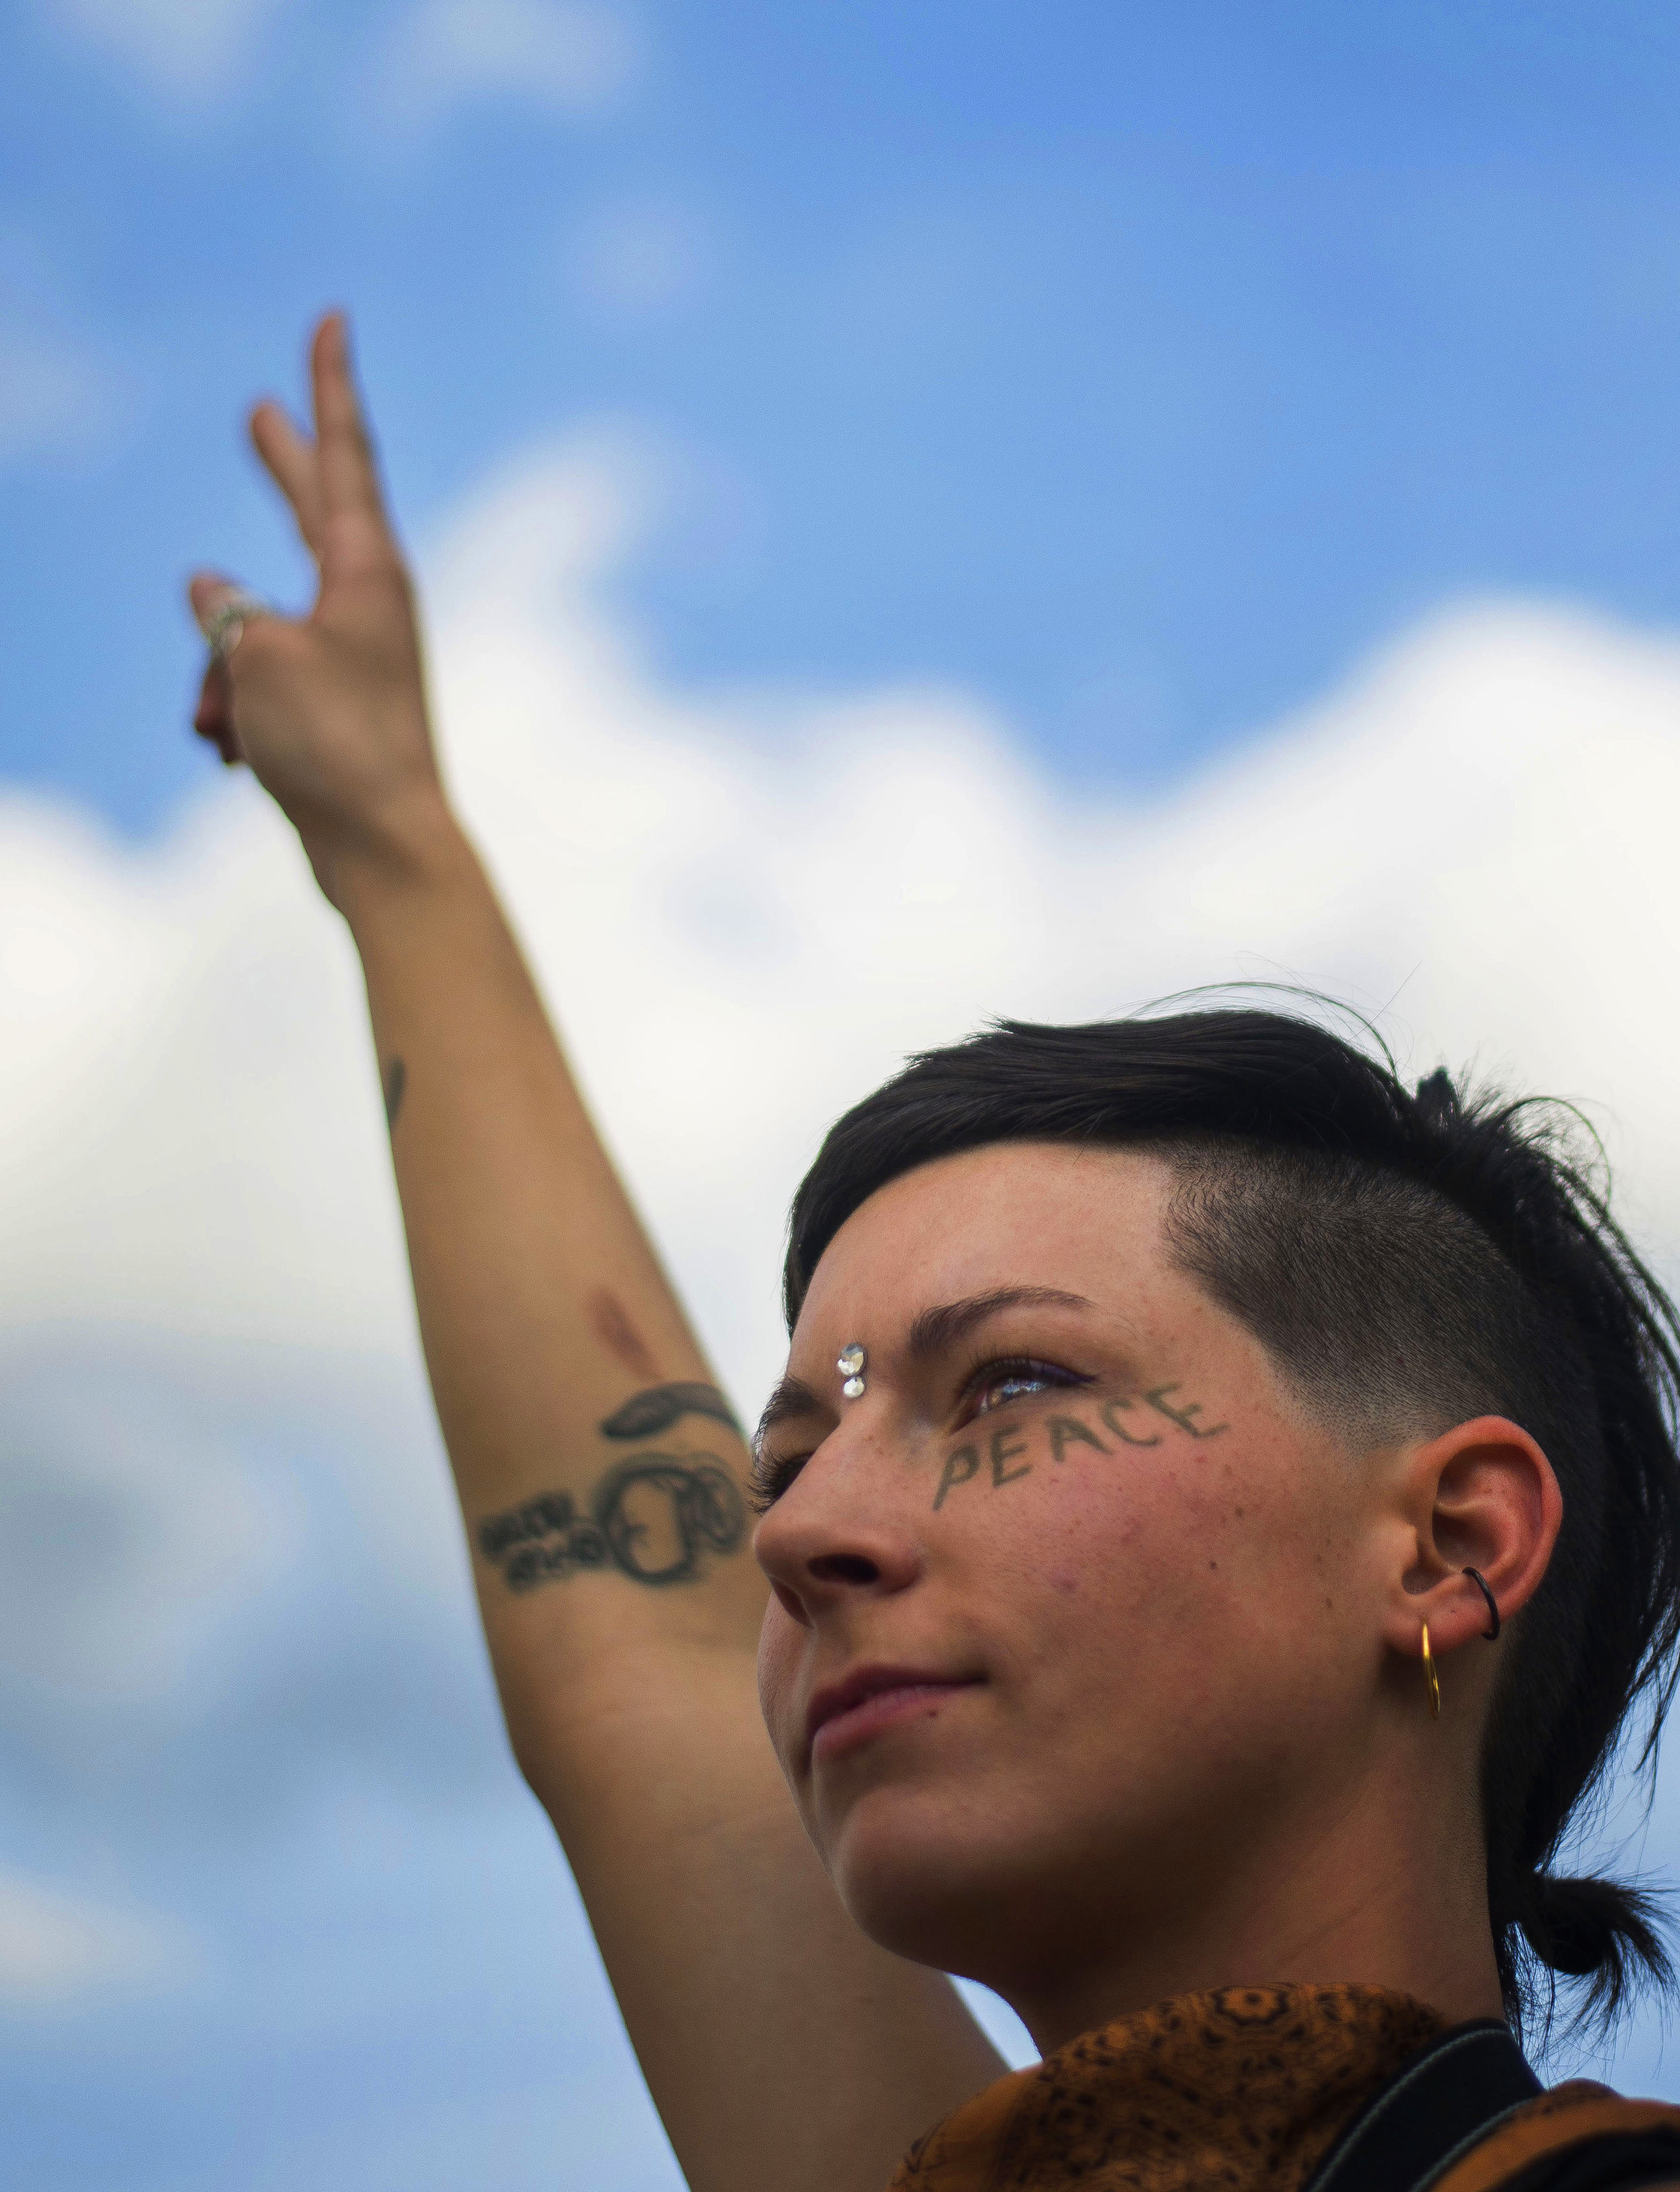 Audrey Conn, 25, stands with a peace sign in the air on the corner of Clinton and Berry streets on June 10, 2016,during the Silent Protest. Many passerbys took photos and videos; those driving honked their horns.